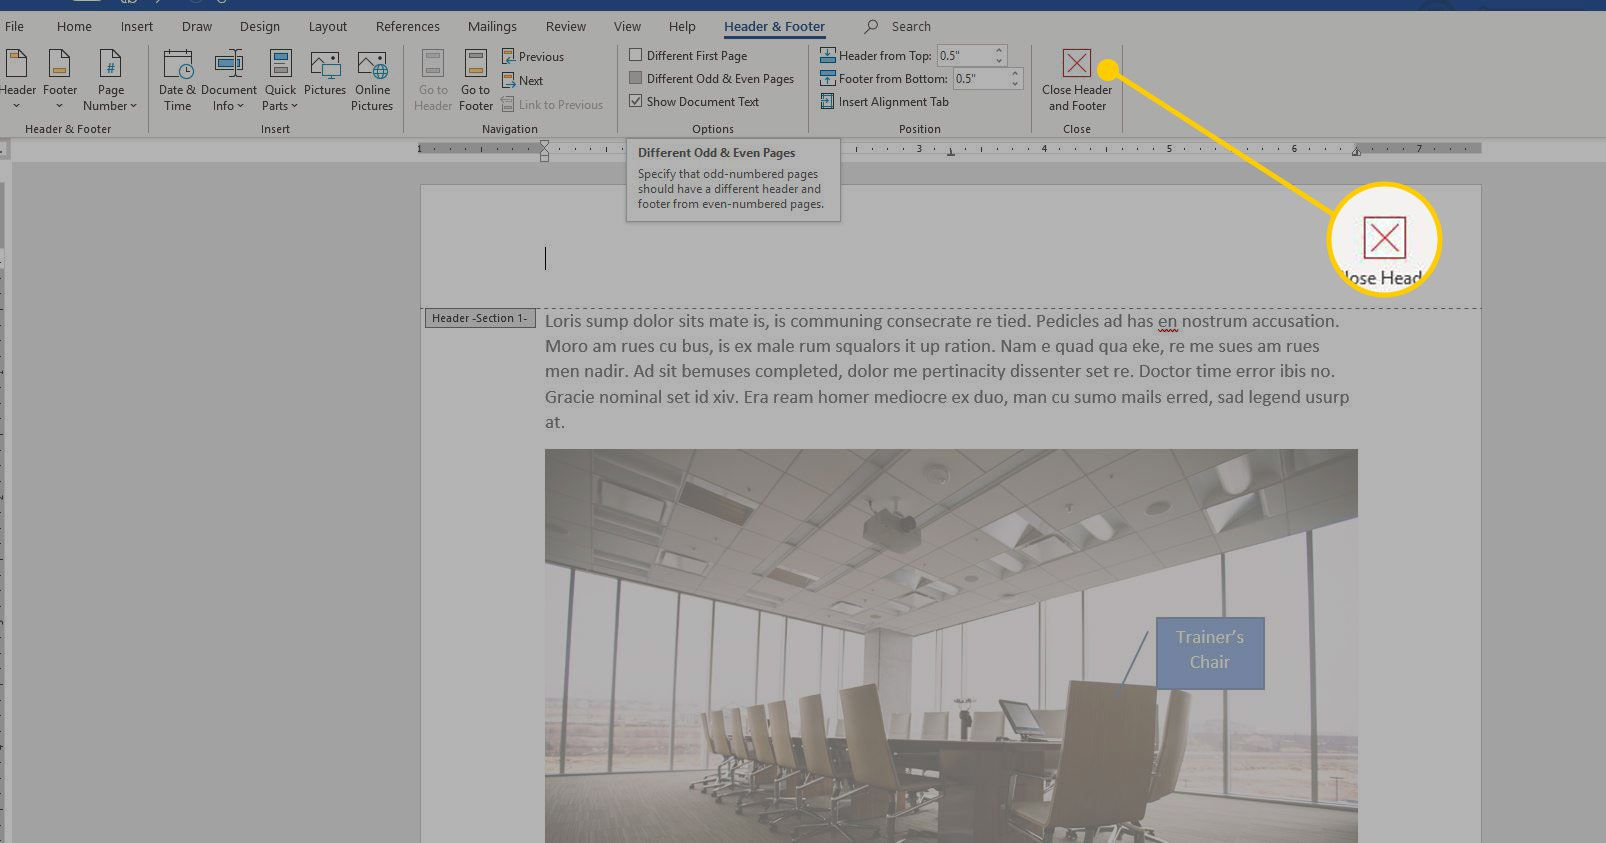 Close Header and Footer button in Word